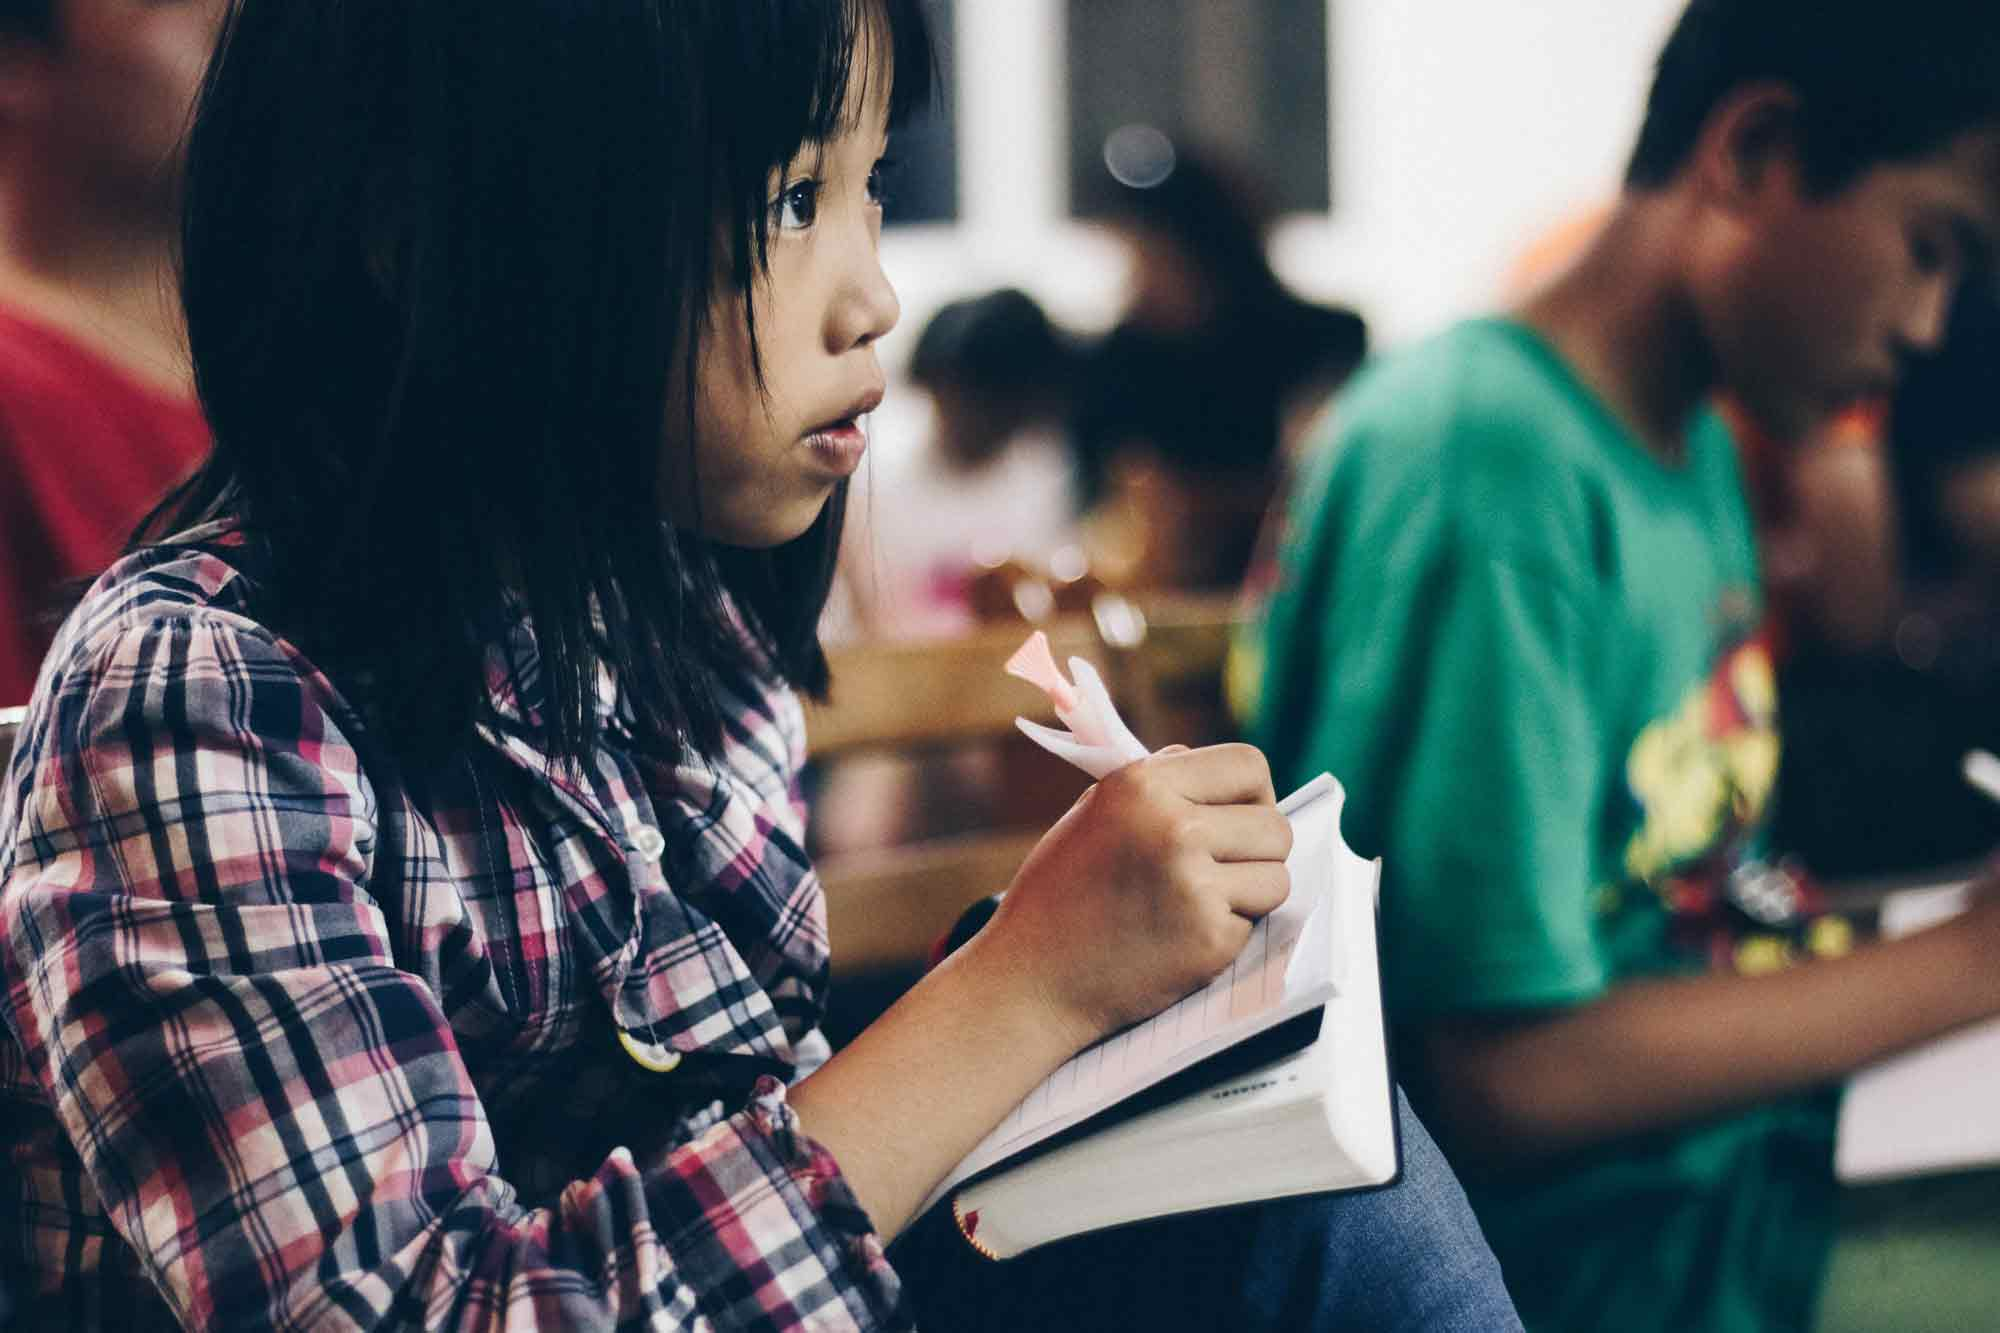 A girl taking notes with her new Bible.